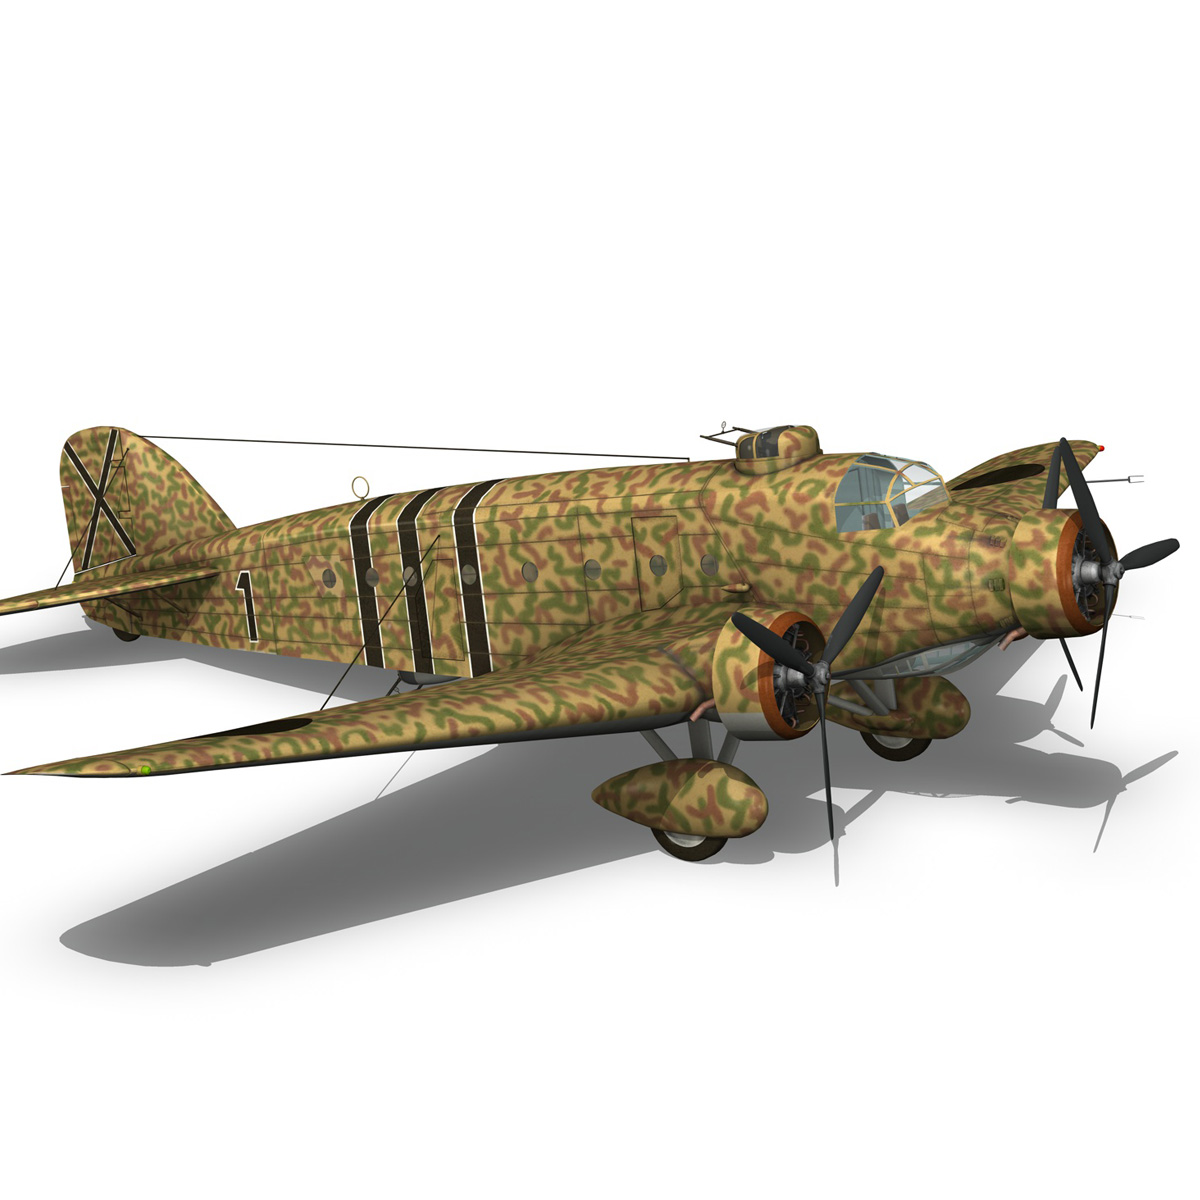 savoia-marchetti sm.81 – spanish civil war 3d model 3ds fbx c4d lwo obj 274155